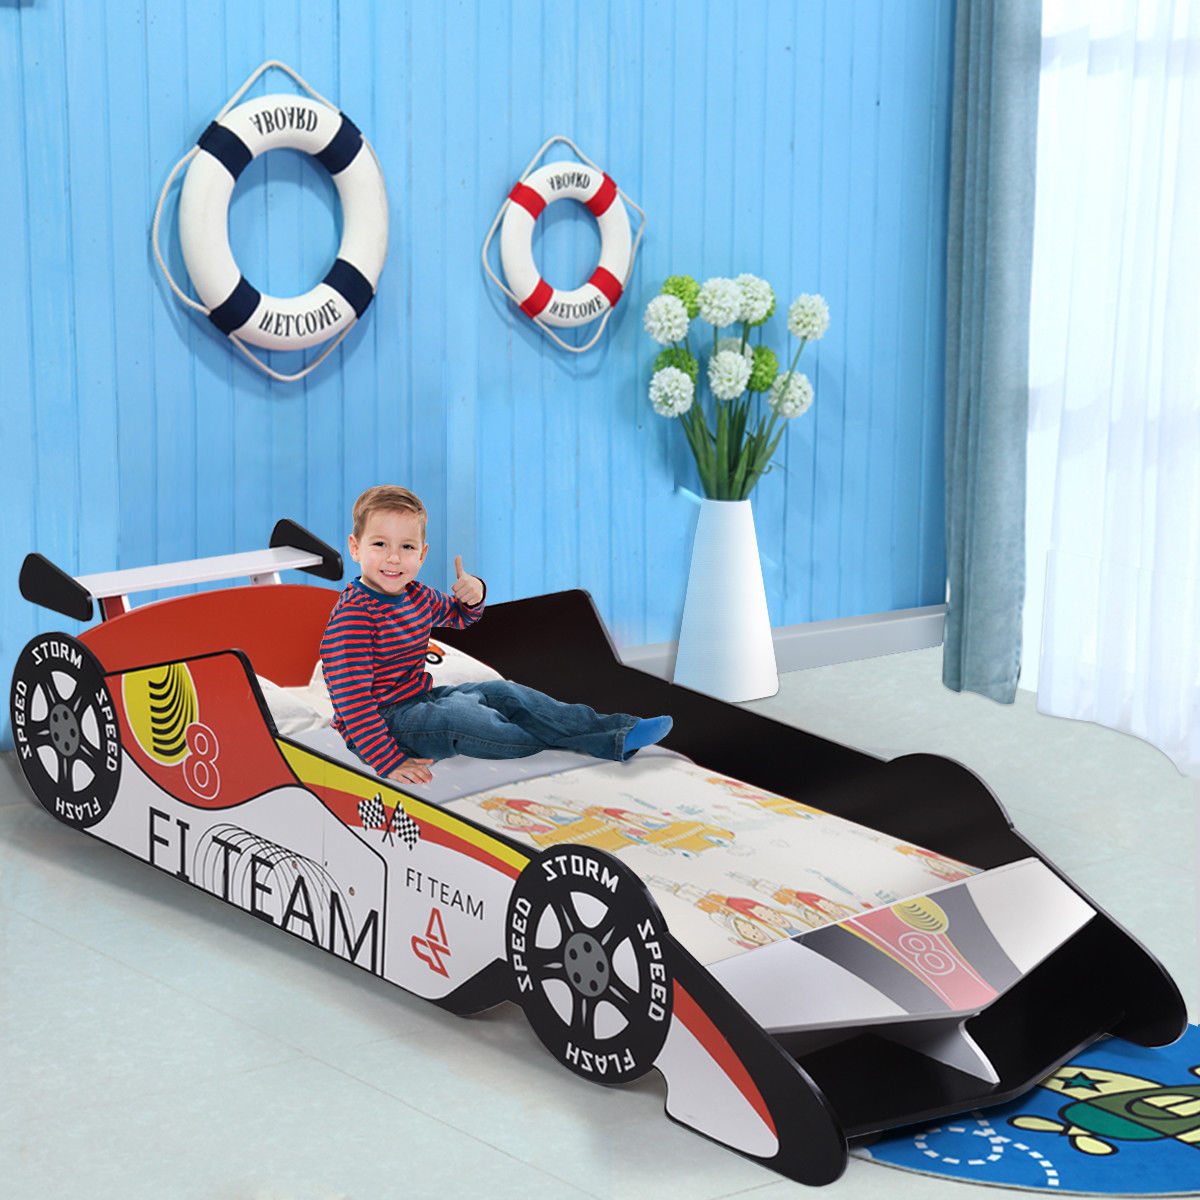 Gymax Kids Toddler Bed Race Car Children Bedroom Fun Play Boys and Girls Furniture